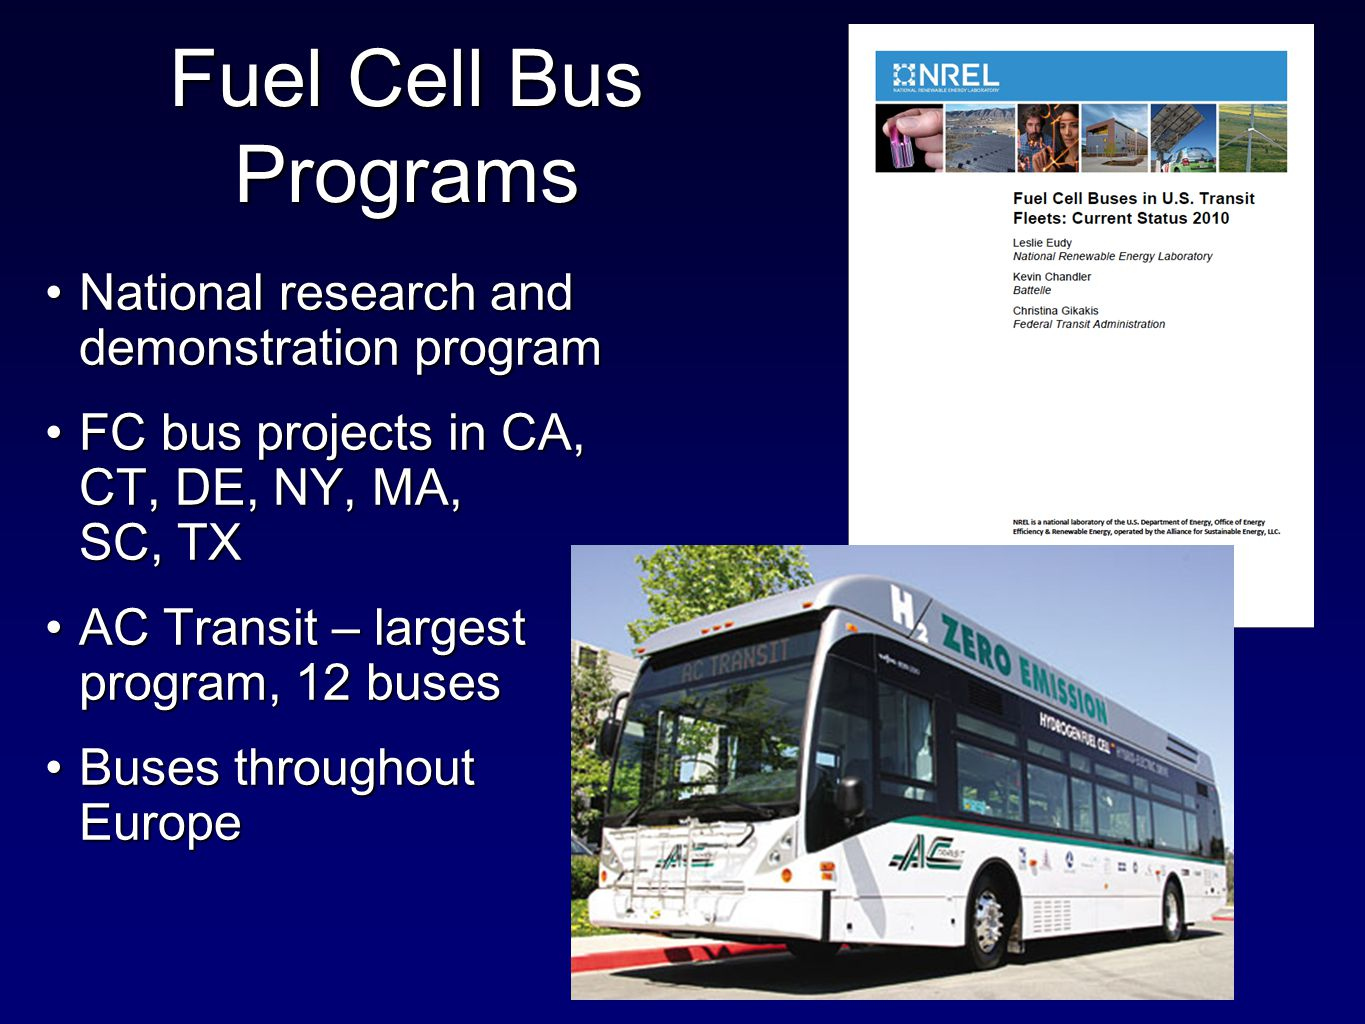 National research and demonstration programNational research and demonstration program FC bus projects in CA, CT, DE, NY, MA, SC, TXFC bus projects in CA, CT, DE, NY, MA, SC, TX AC Transit – largest program, 12 busesAC Transit – largest program, 12 buses Buses throughout EuropeBuses throughout Europe Fuel Cell Bus Programs